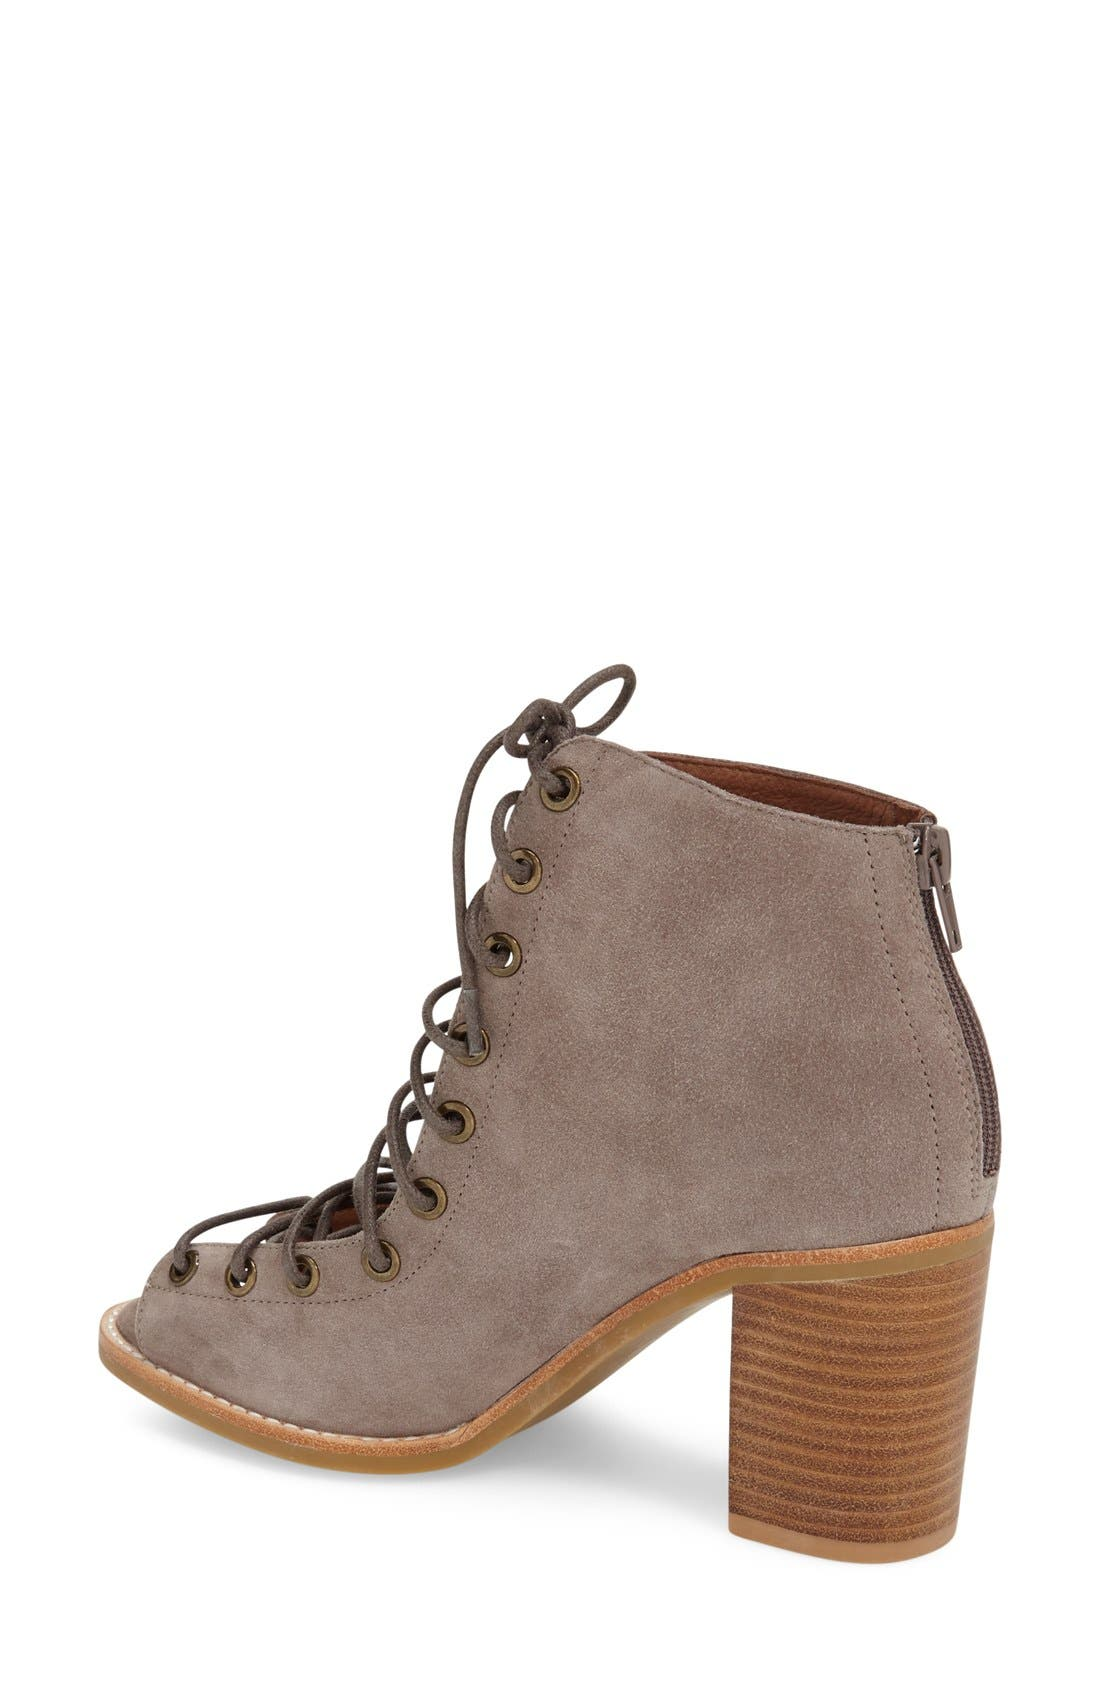 'Cors' Suede Peep Toe Bootie,                             Alternate thumbnail 2, color,                             Taupe Suede